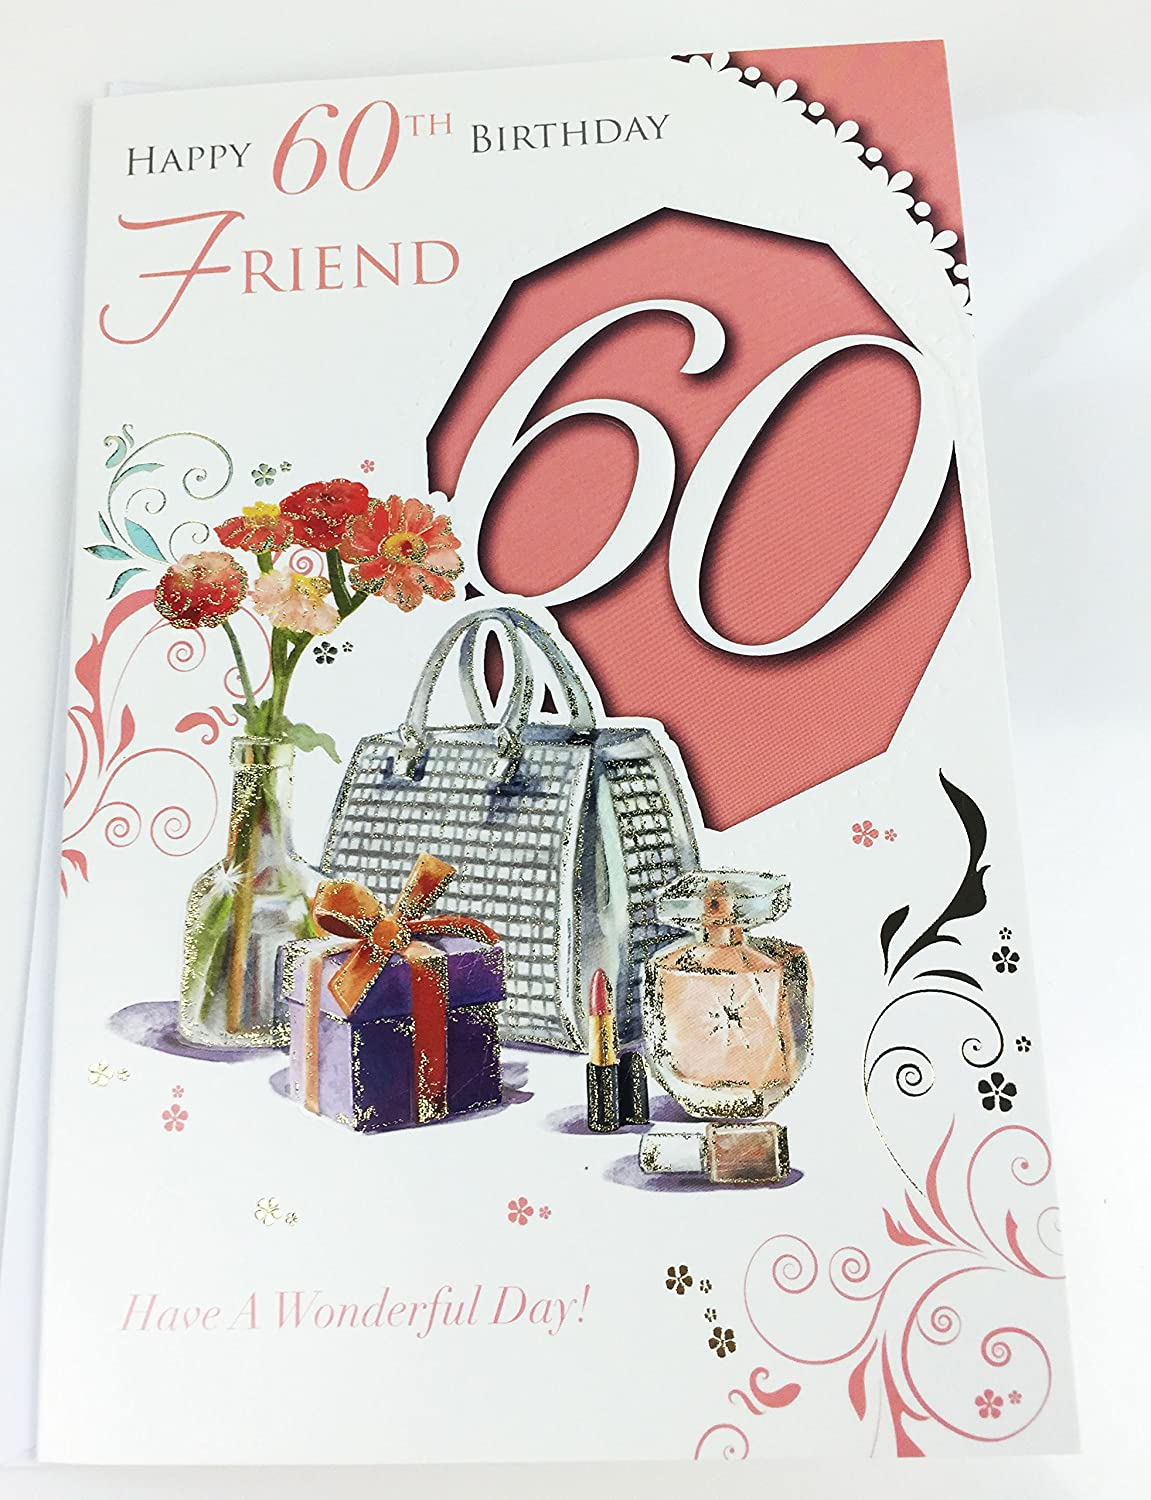 Friend 60th birthday card large greeting card for age 60 female friend 60th birthday card large greeting card for age 60 female friends quality amazon office products m4hsunfo